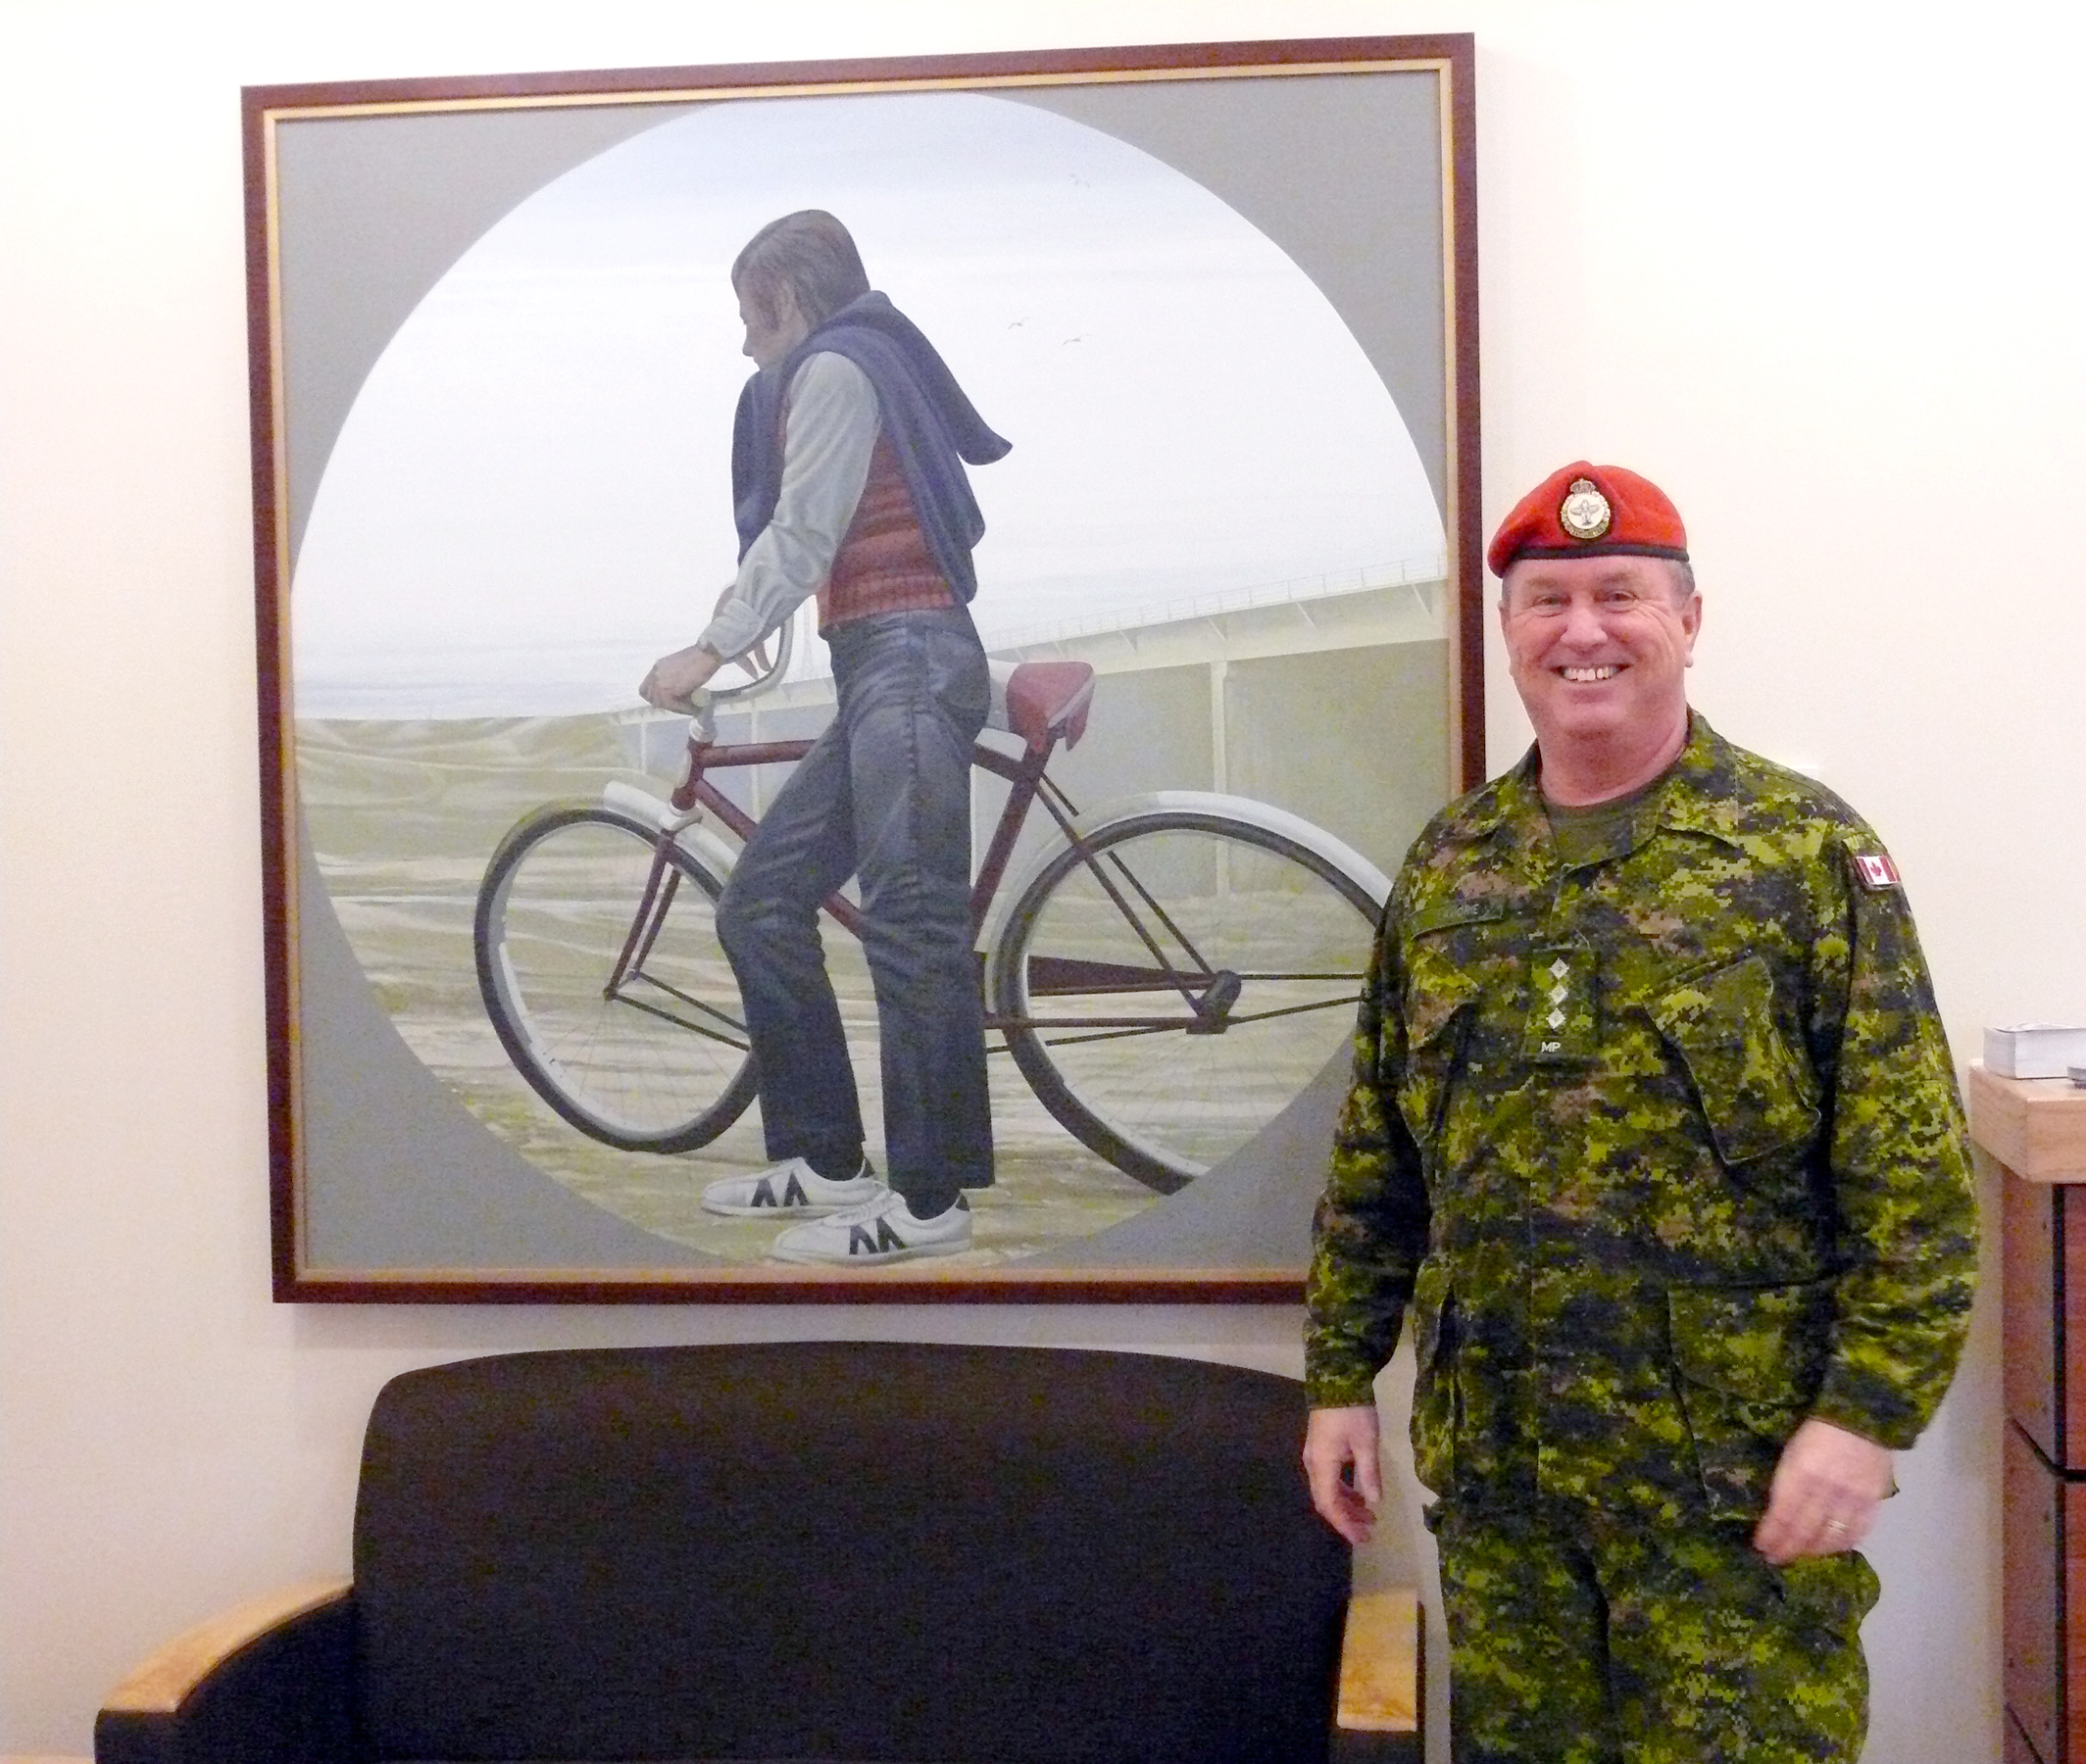 Captain K.B. Lamorie stands before one of the paintings from the Canada Council Art Bank currently on display at the transition centre at CFB Petawawa. This initiative by Her Excellency Sharon Johnston, who graduated from the University of Toronto as a physical and occupational therapist, is bringing little-seen paintings and sculptures into a traditionally austere environment in an effort to help CAF members dealing with PTSD. (esprit de corps)